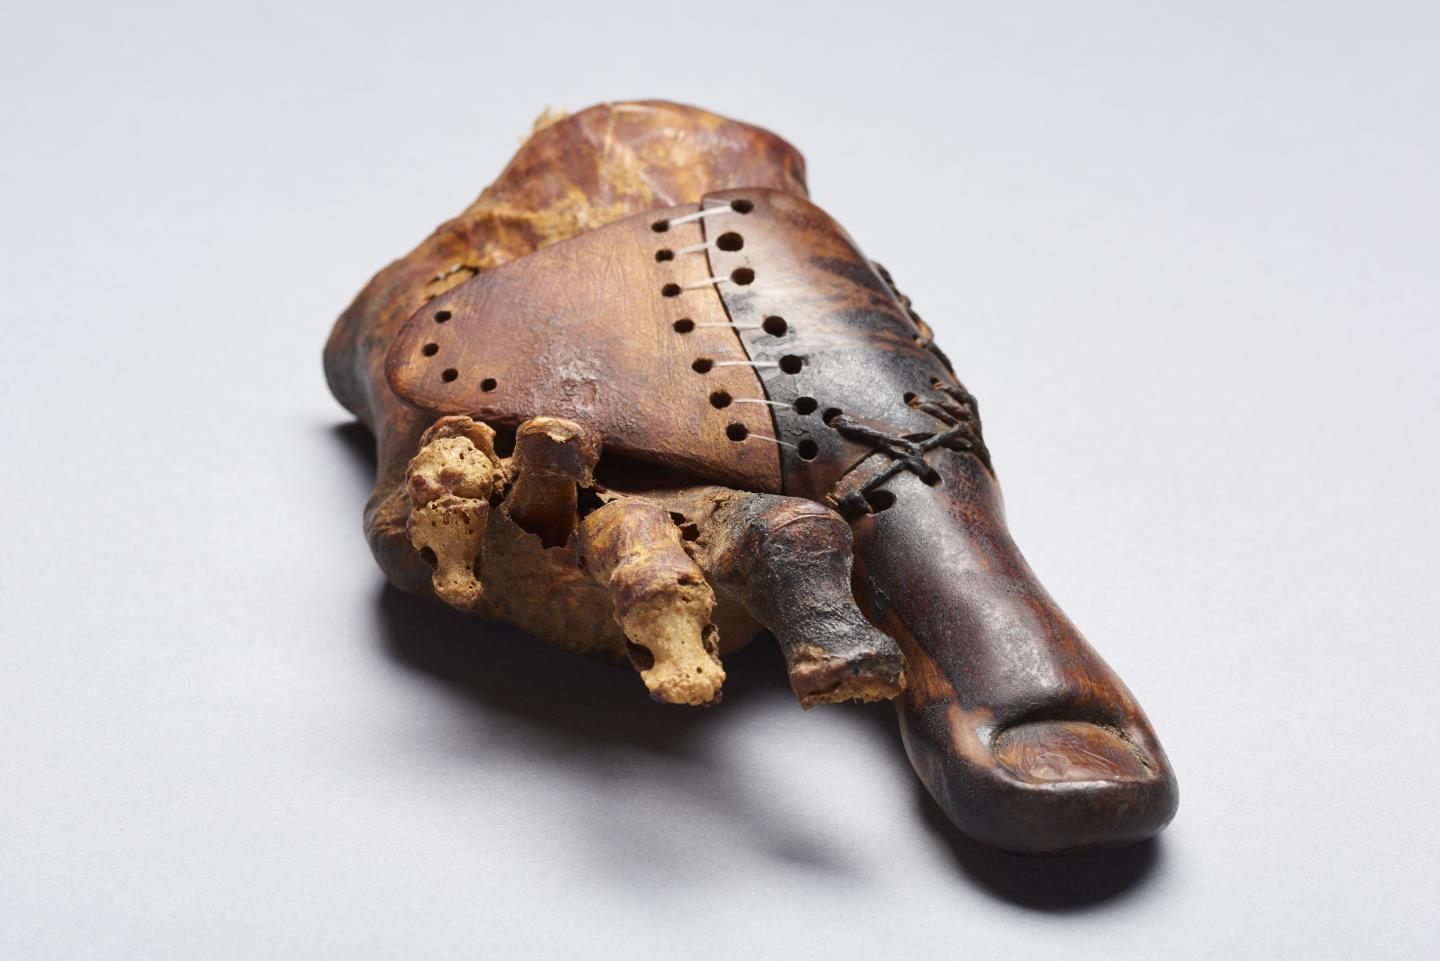 History News of the Week - Ancient Egyptian Prosthesis Studied